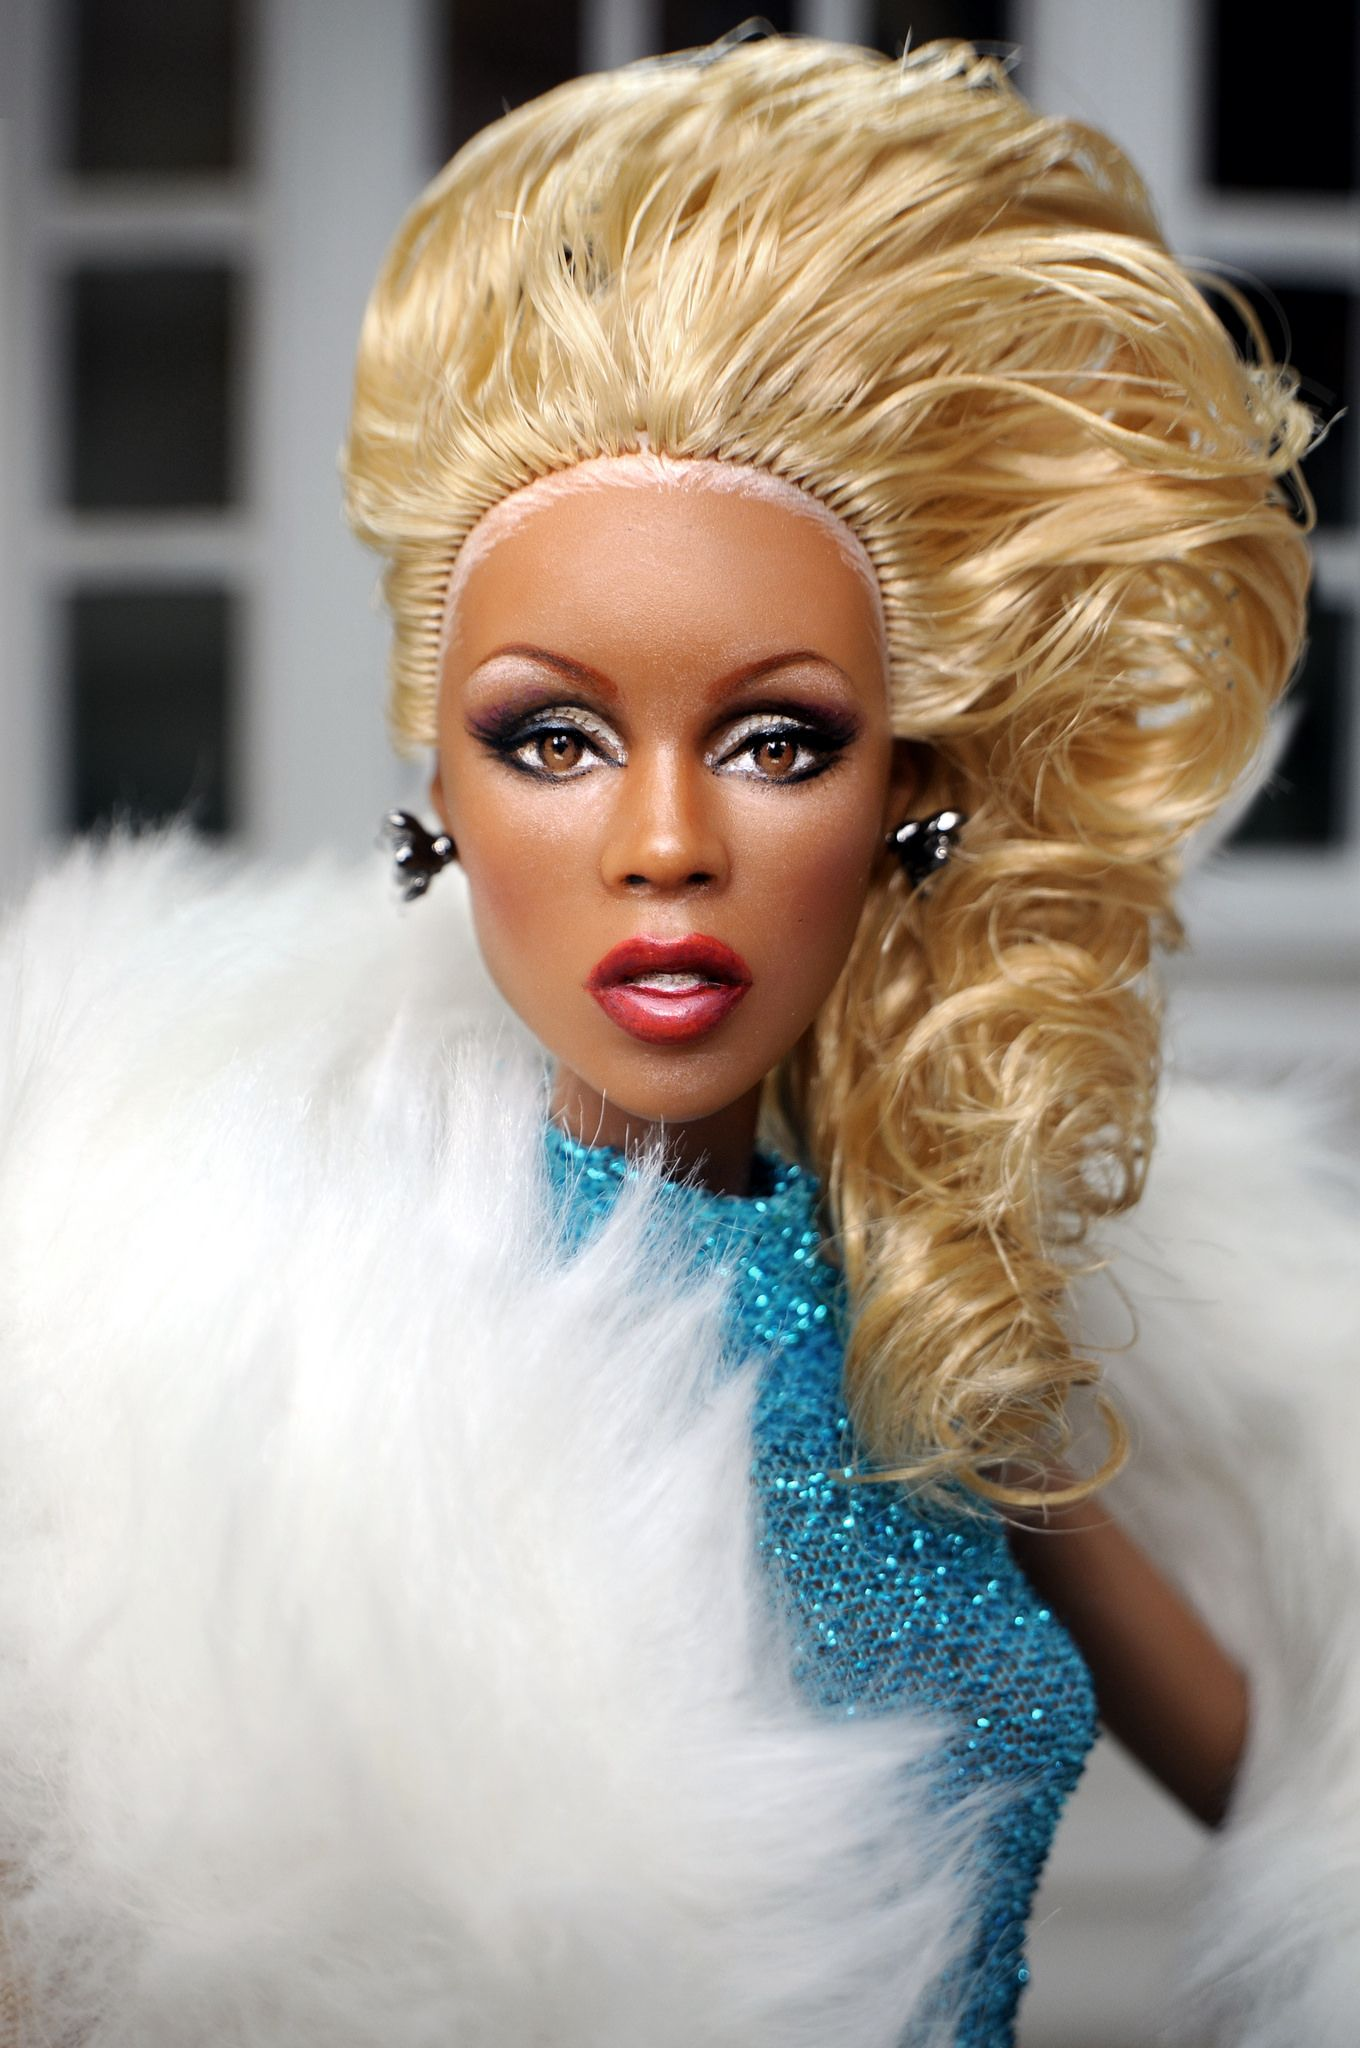 rupaul en barbie